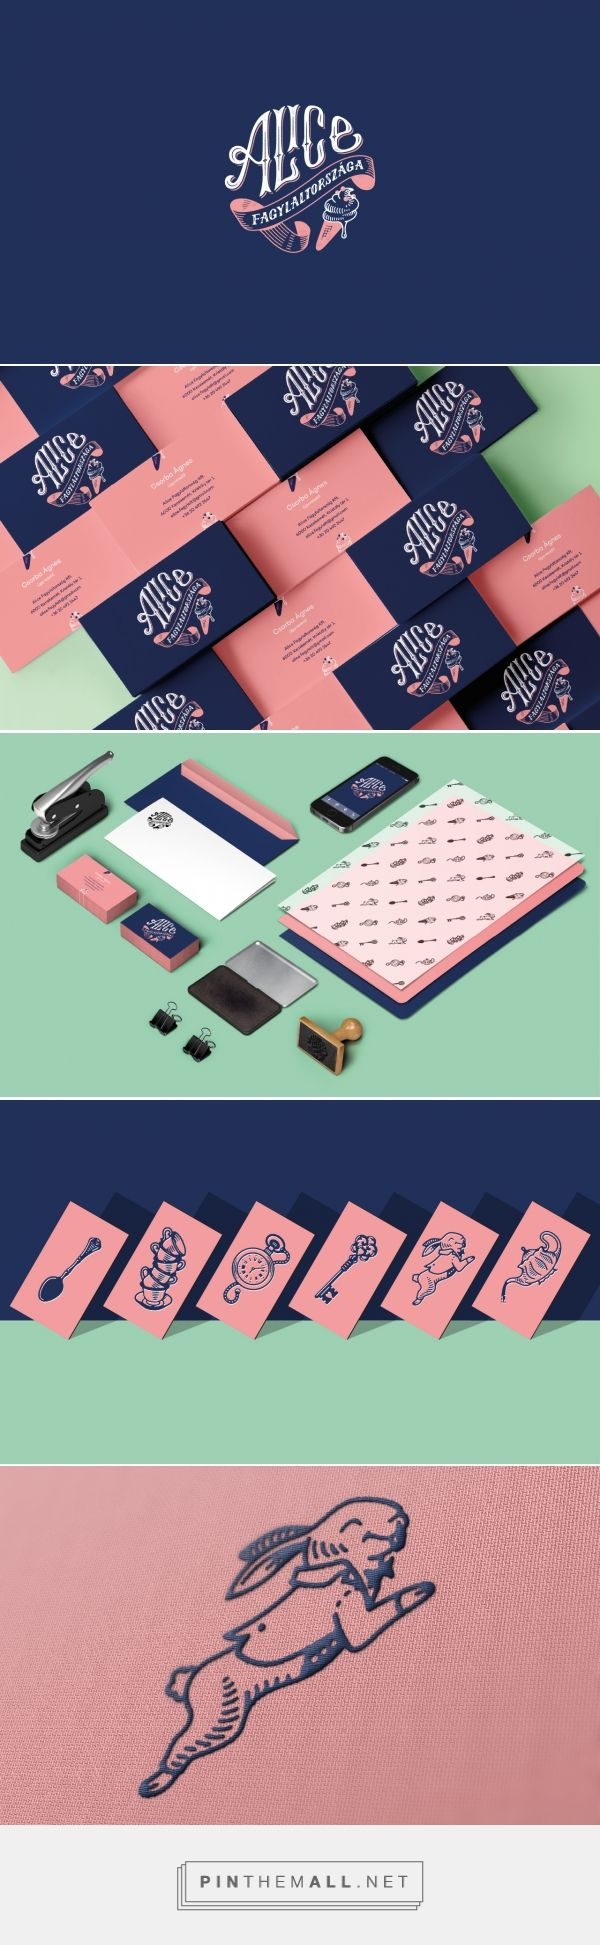 Alice Branding by Dori Novotny | Fivestar Branding – Design and Branding Agency & Inspiration Gallery